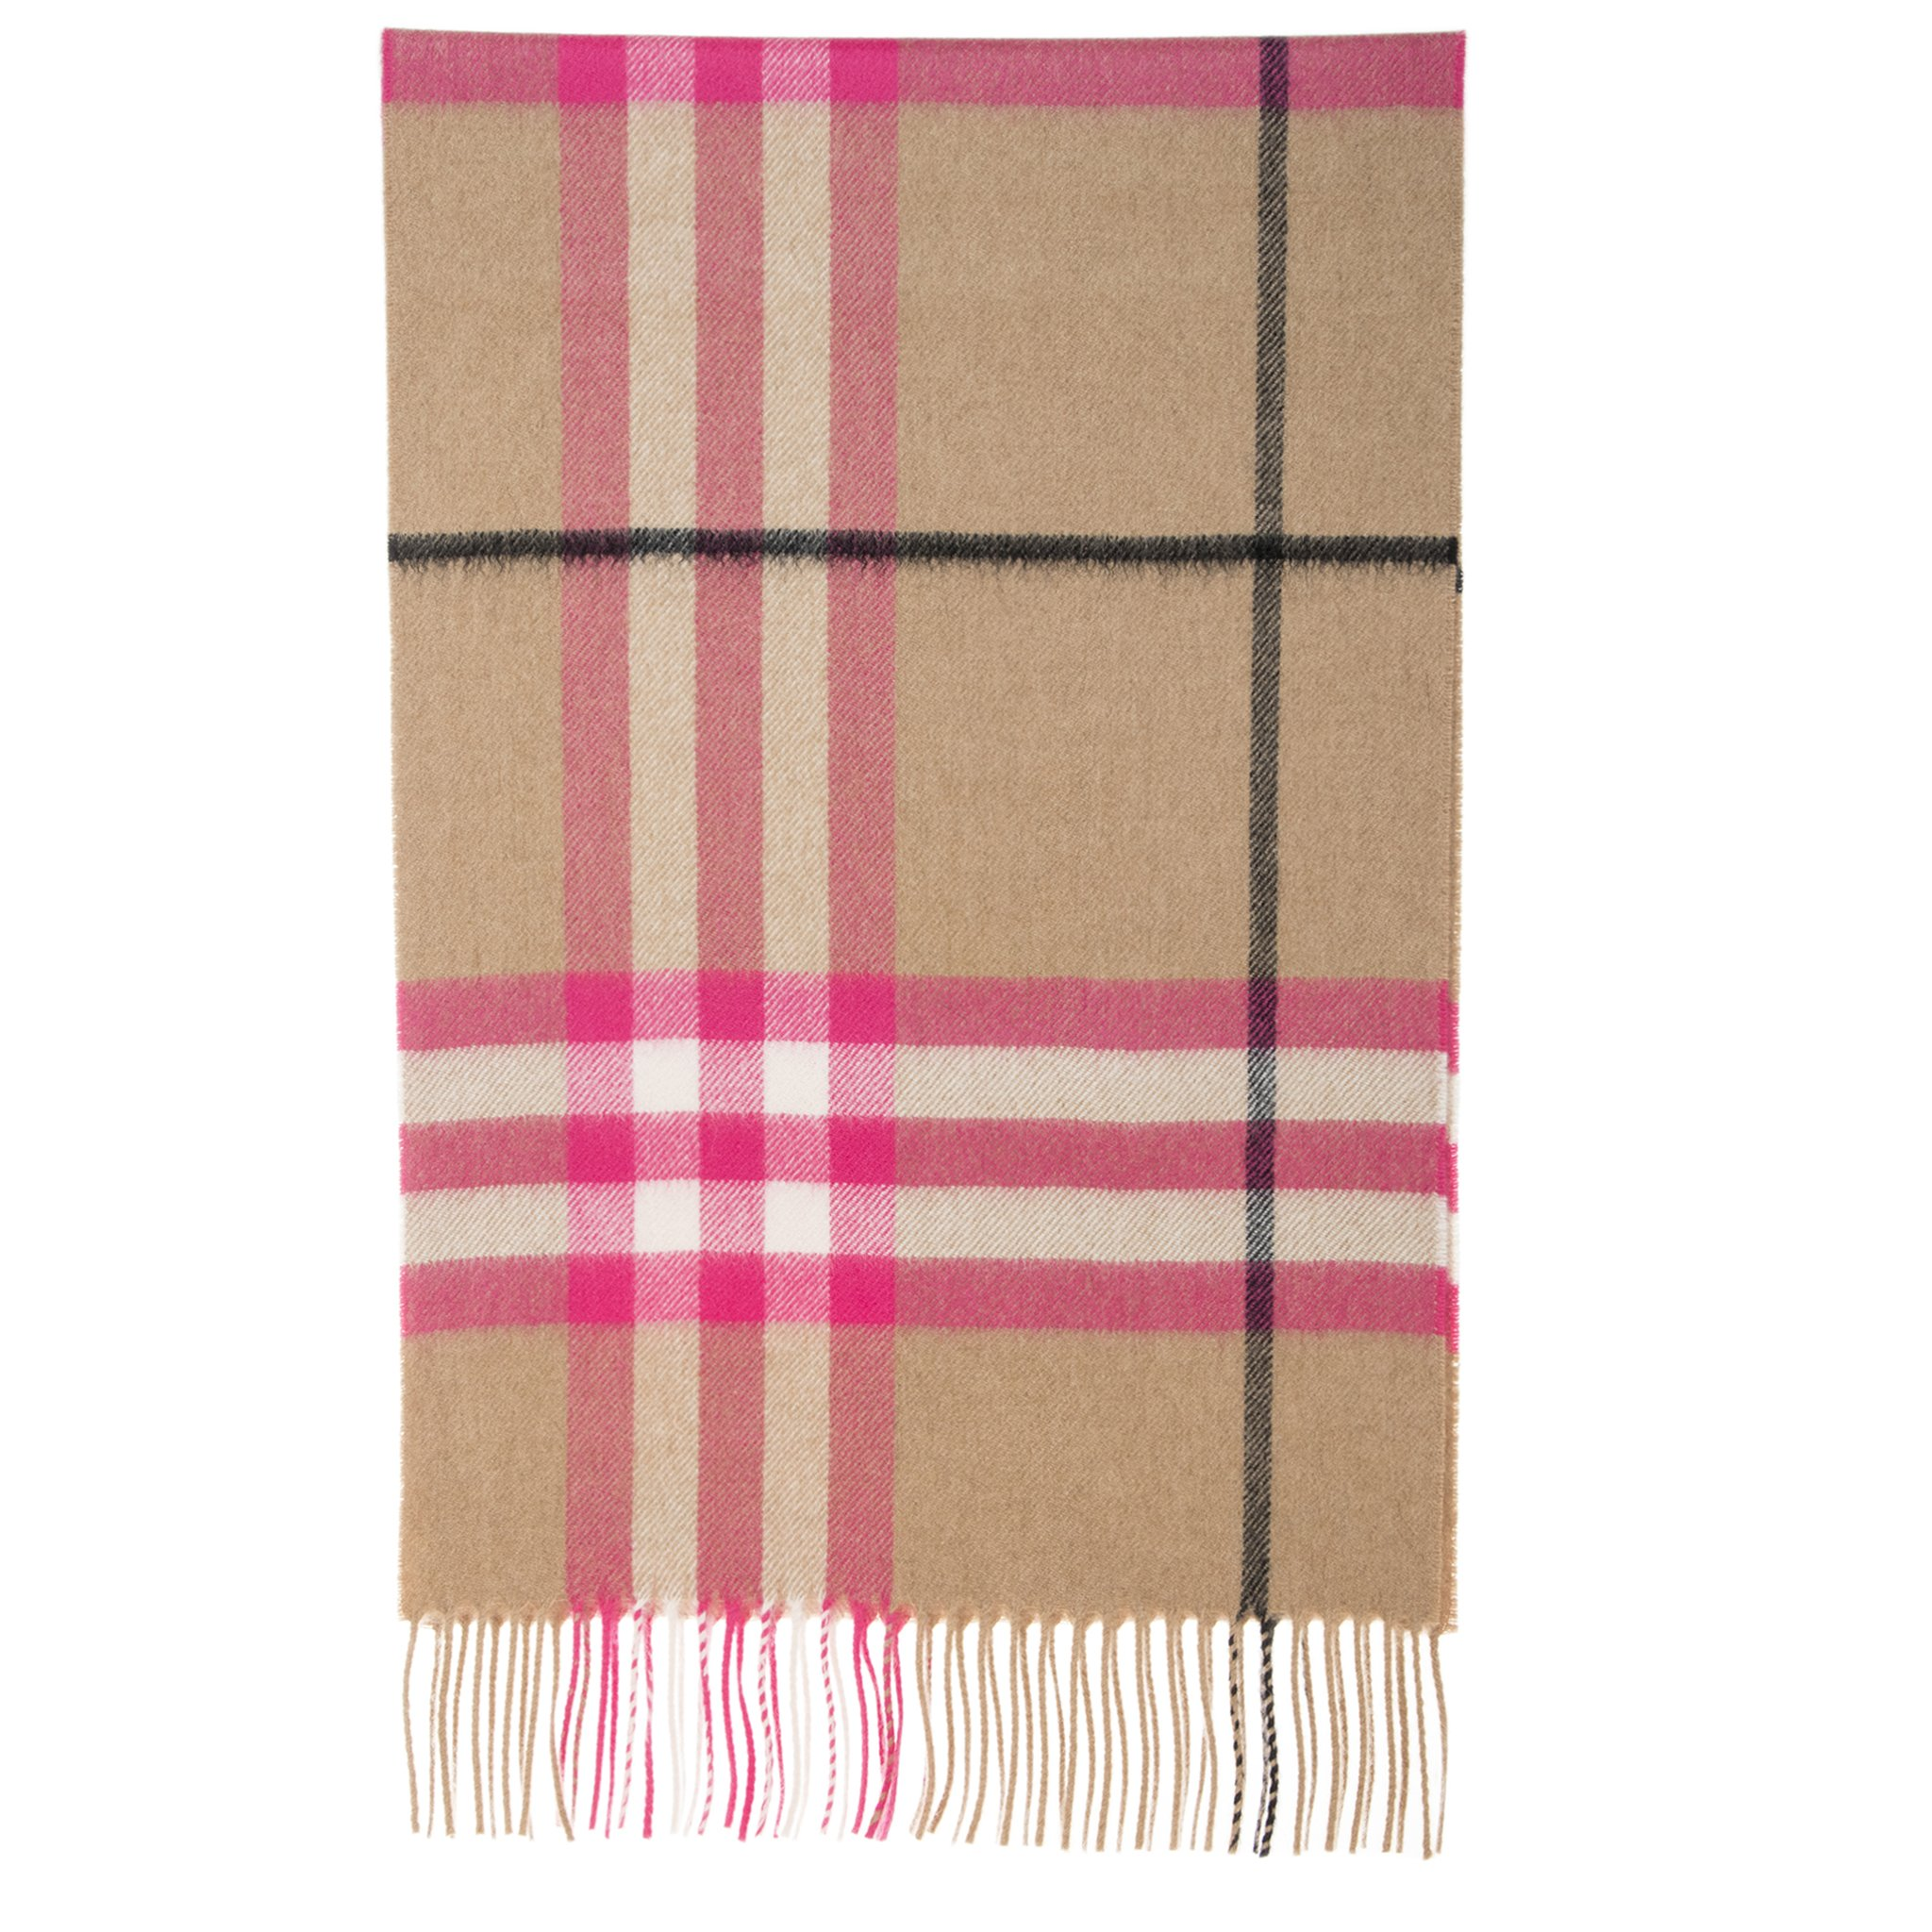 Burberry Women's The Classic Check Cashmere Scarf Bright Peony